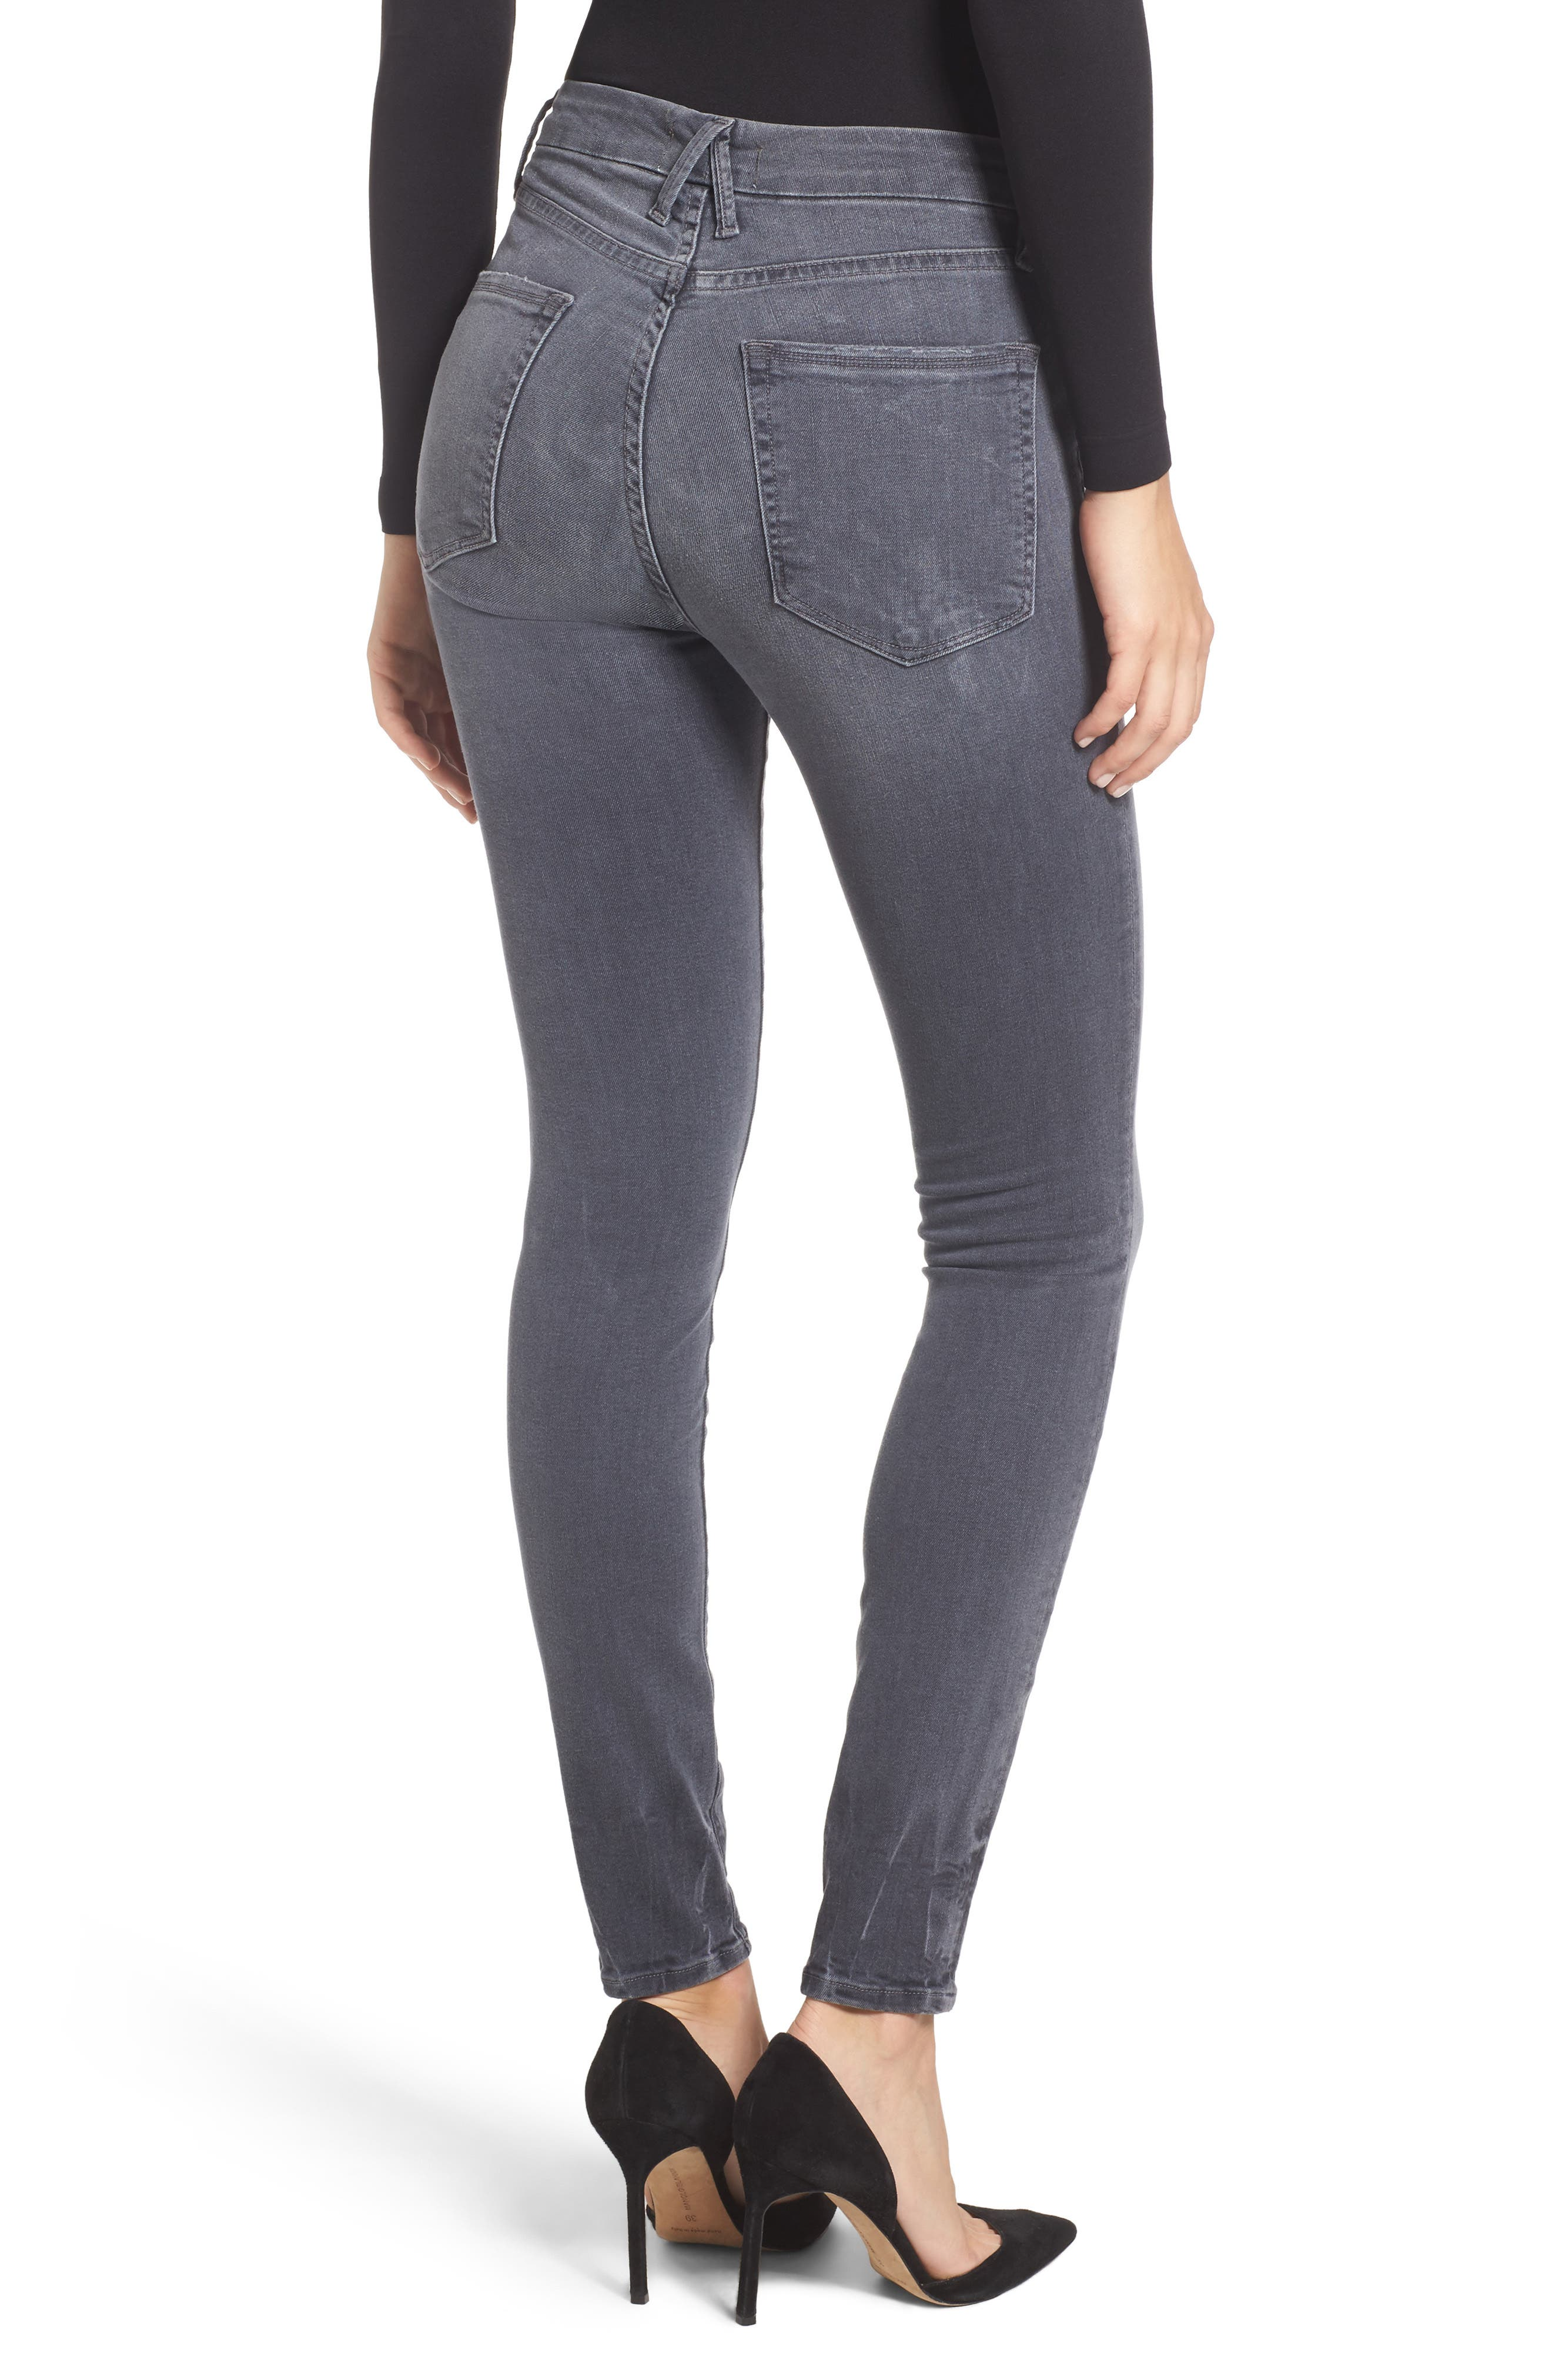 Alternate Image 2  - Good American Good Legs High Waist Skinny Jeans (Grey 002) (Extended Sizes)